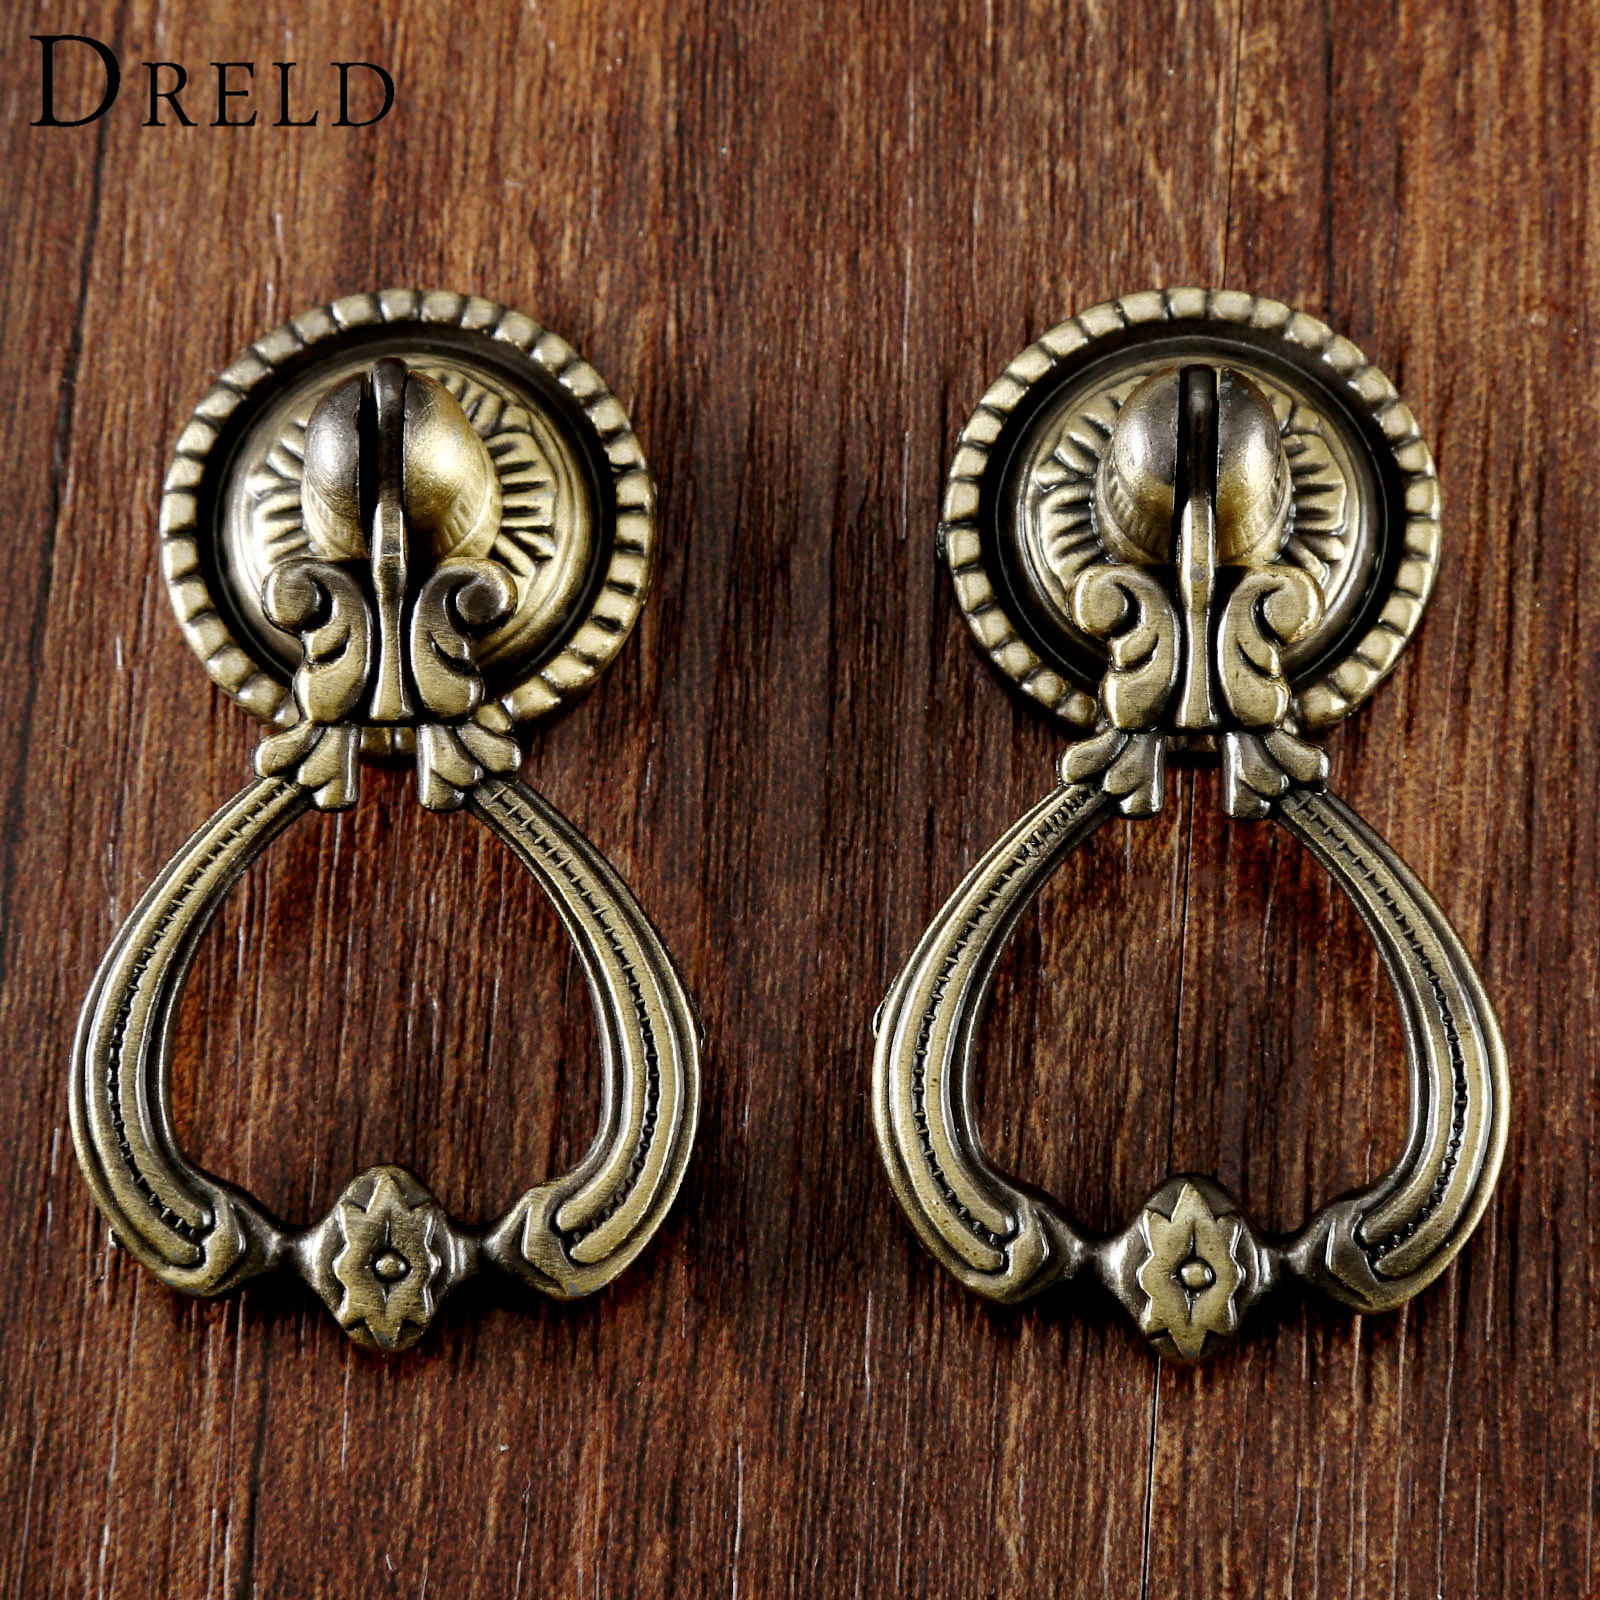 DRELD 2Pcs Antique Brass Furniture Handles Vintage Cabinet Knobs and Handles Door Closet Cabinet Drawer Pull Handle for Kitchen dreld 96 128 160mm furniture handle modern cabinet knobs and handles door cupboard drawer kitchen pull handle furniture hardware